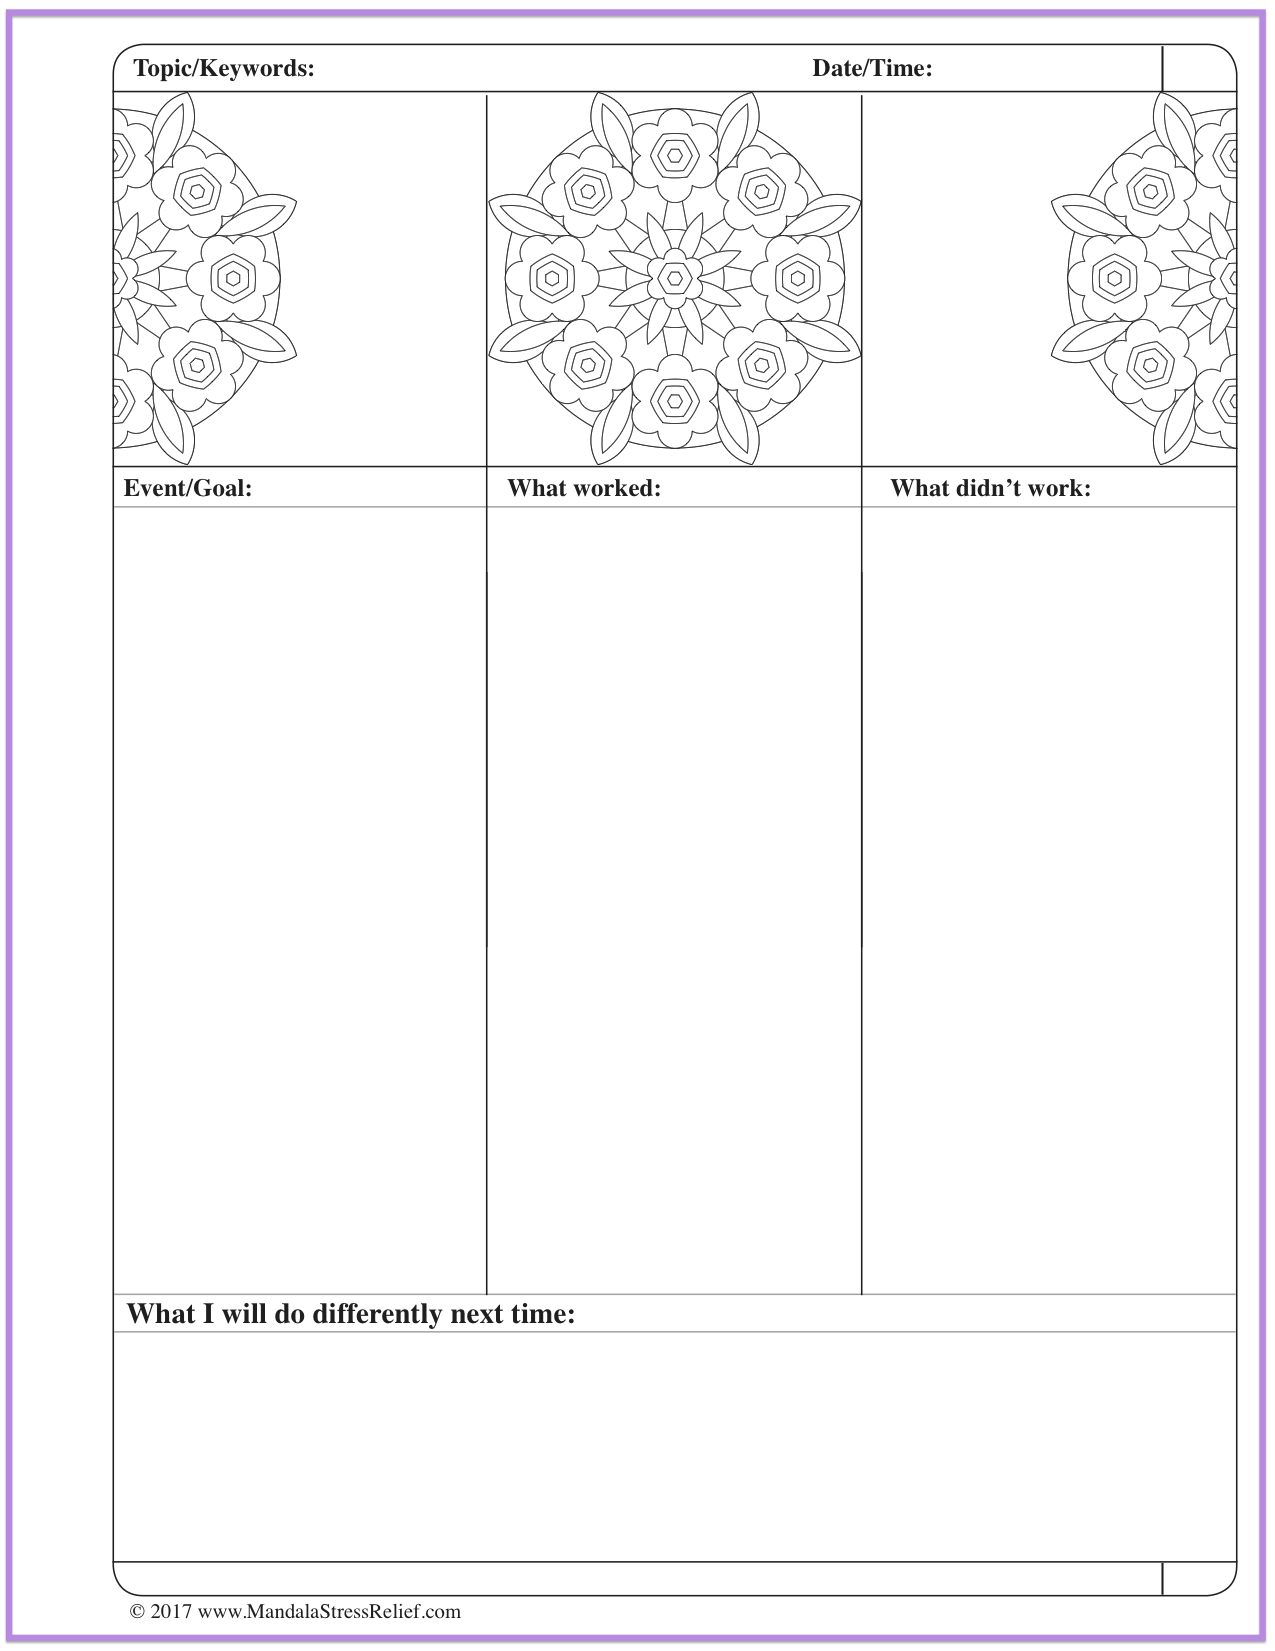 Download the Mandala Colour-Journalling Review/Preview Page.